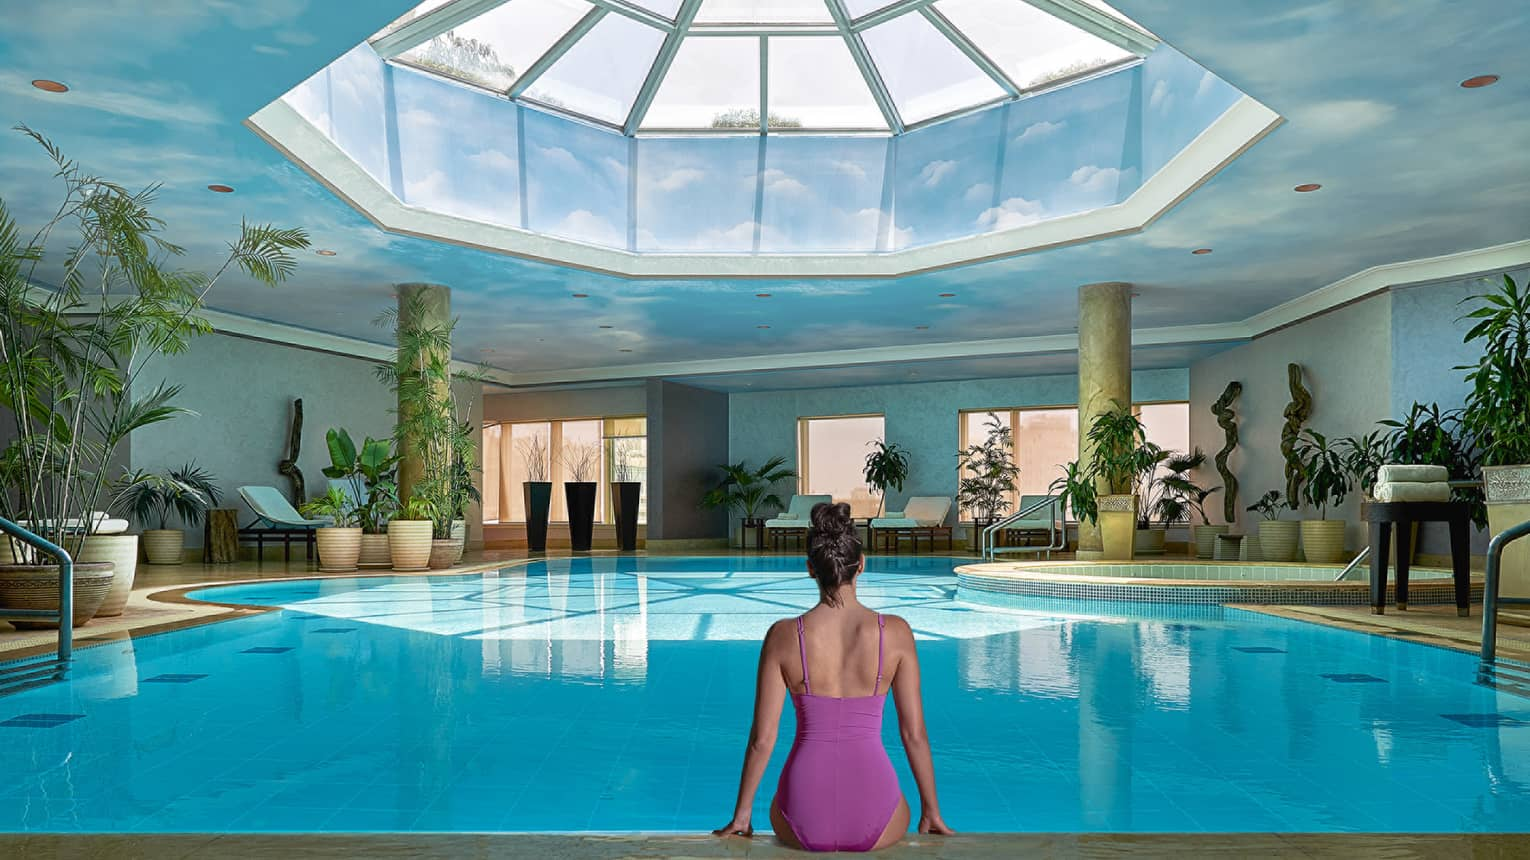 Woman in swimsuit seated on edge of indoor pool with blue ceiling and skylight above